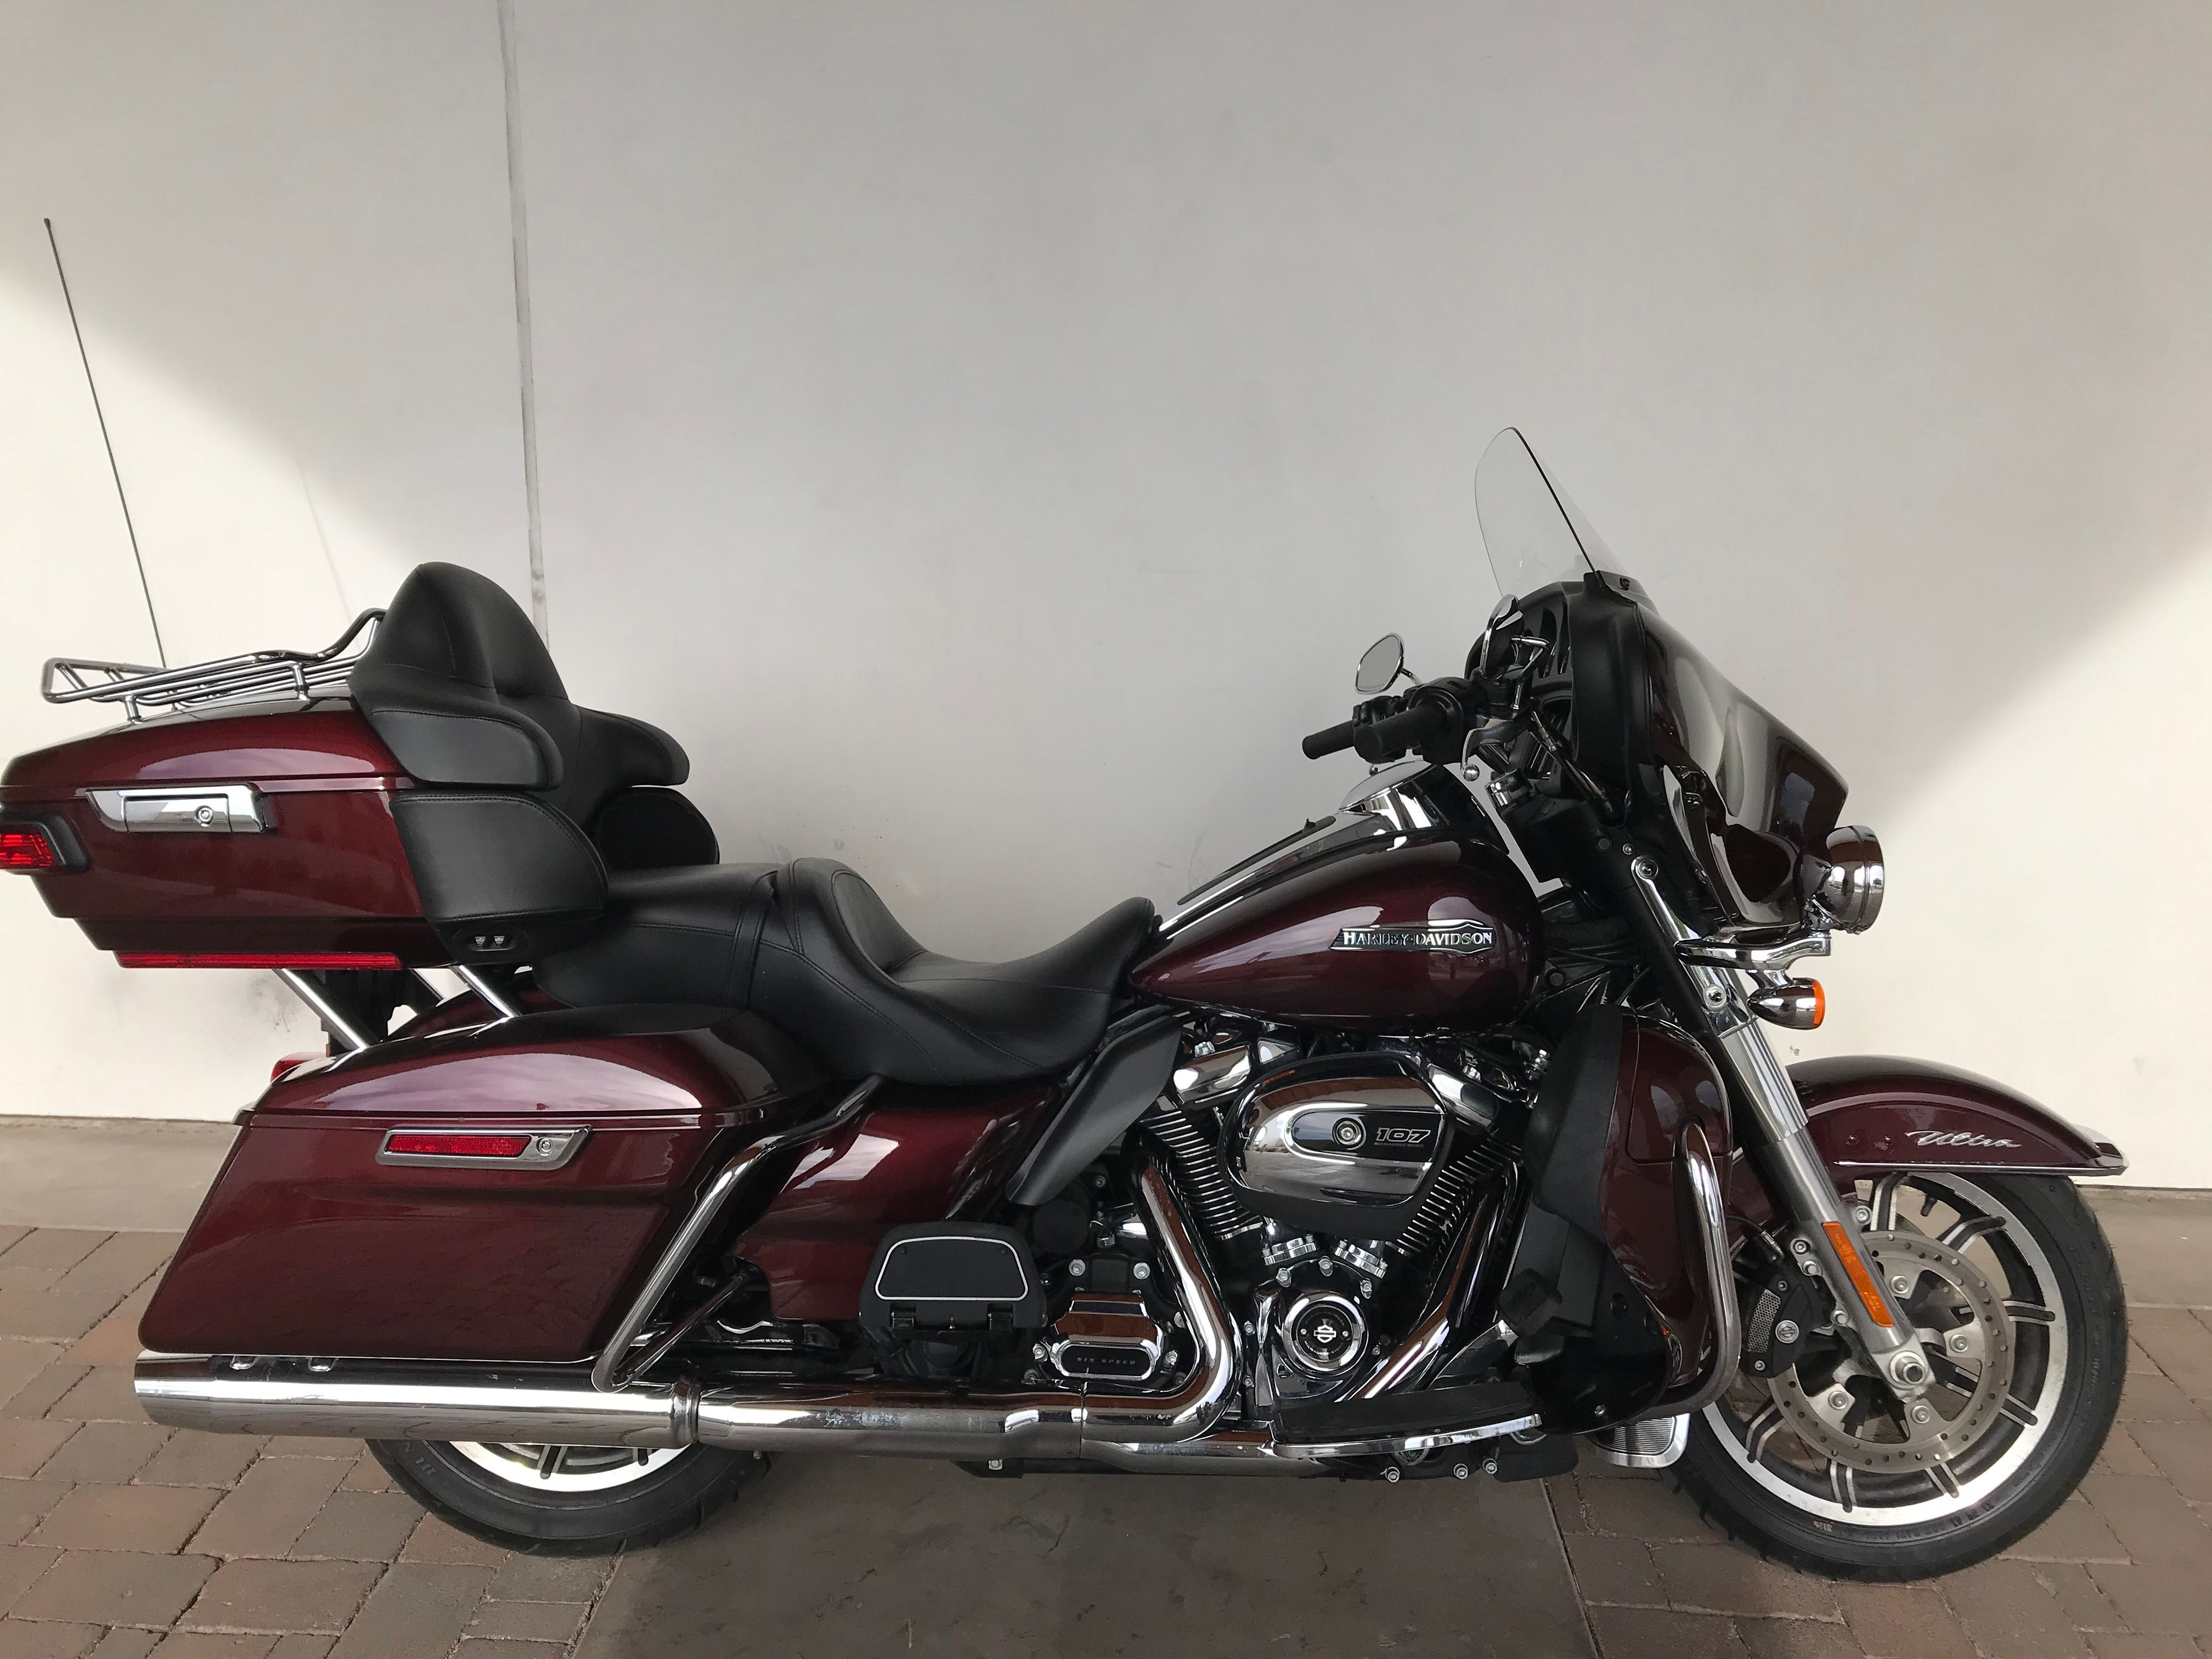 Pre-Owned 2019 Harley-Davidson Touring Electra Glide Ultra Classic FLHTCU